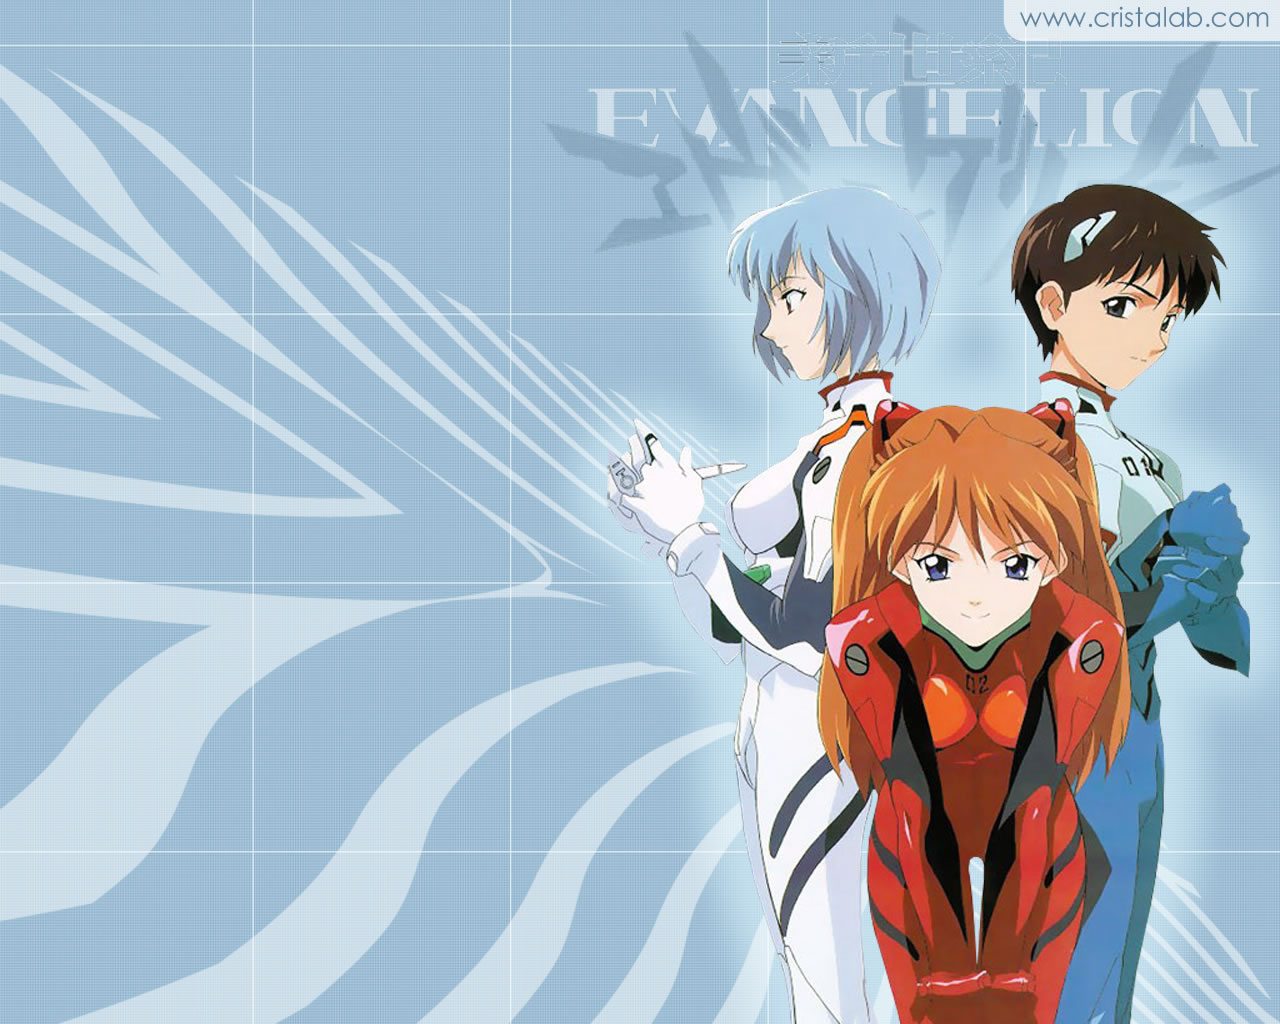 Neon Genesis Evangelion Wallpaper at 1024x768. Evangelion